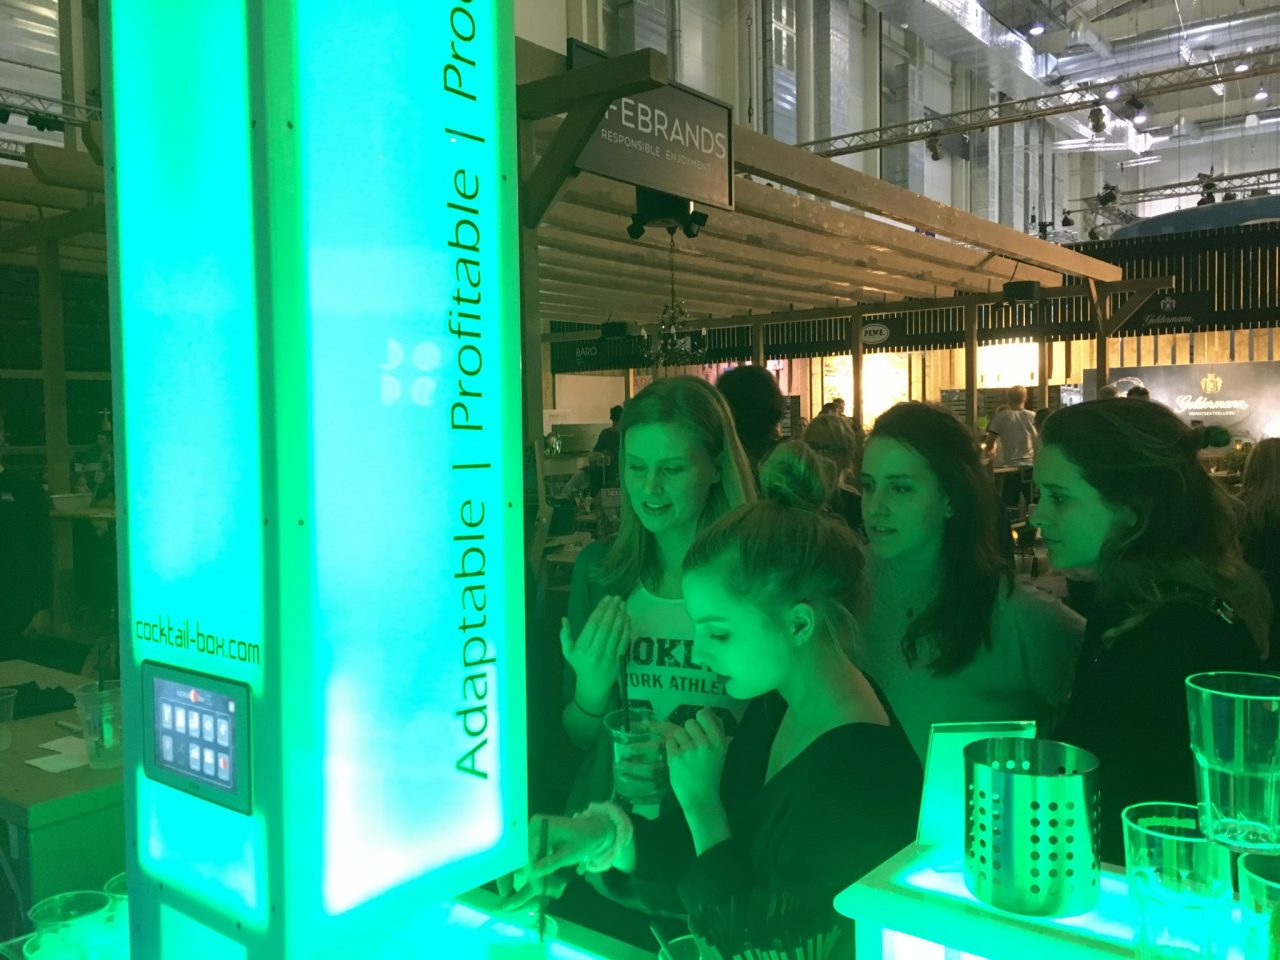 Internorga GenussGarten 2017 und perfekte Cocktail aus der cocktail-box, die Cocktailmaschine und mobile Cocktailbar für besonderes Cocktail-Catering